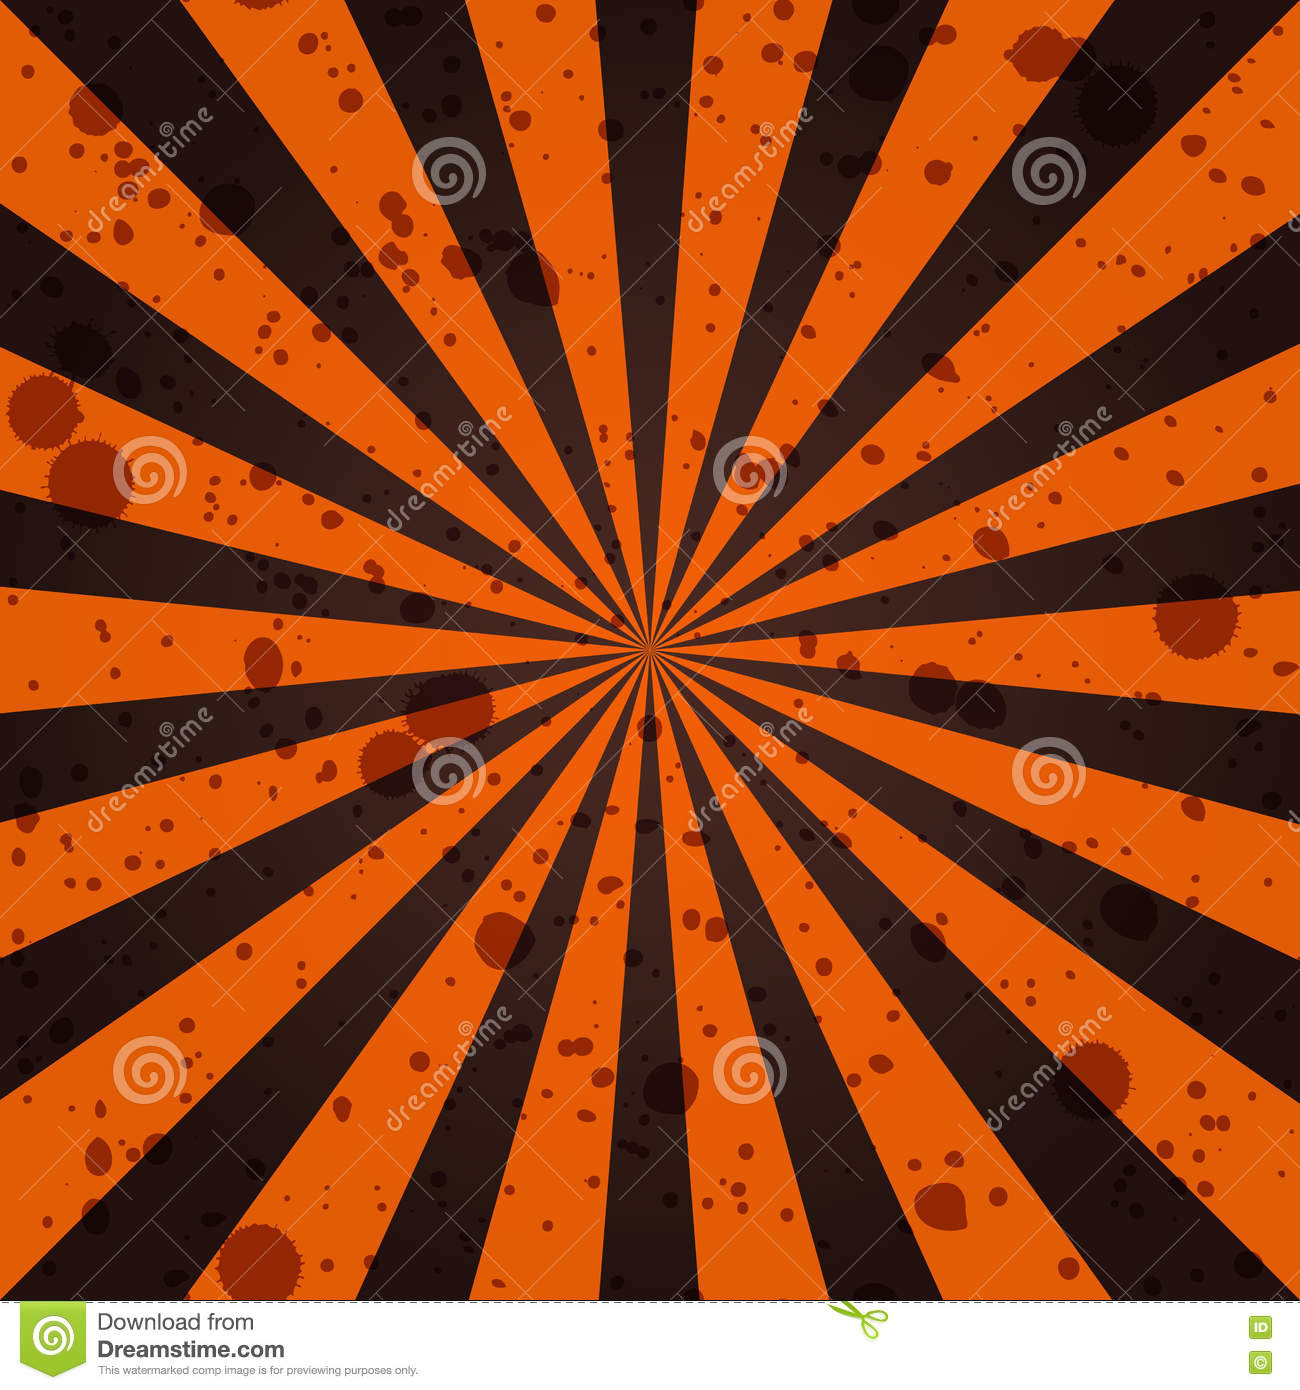 Best Wallpaper Halloween Grunge - grunge-sunbeam-background-halloween-traditional-colors-orange-black-sun-rays-abstract-wallpaper-red-ink-spots-drips-77716209  Gallery_995661.jpg